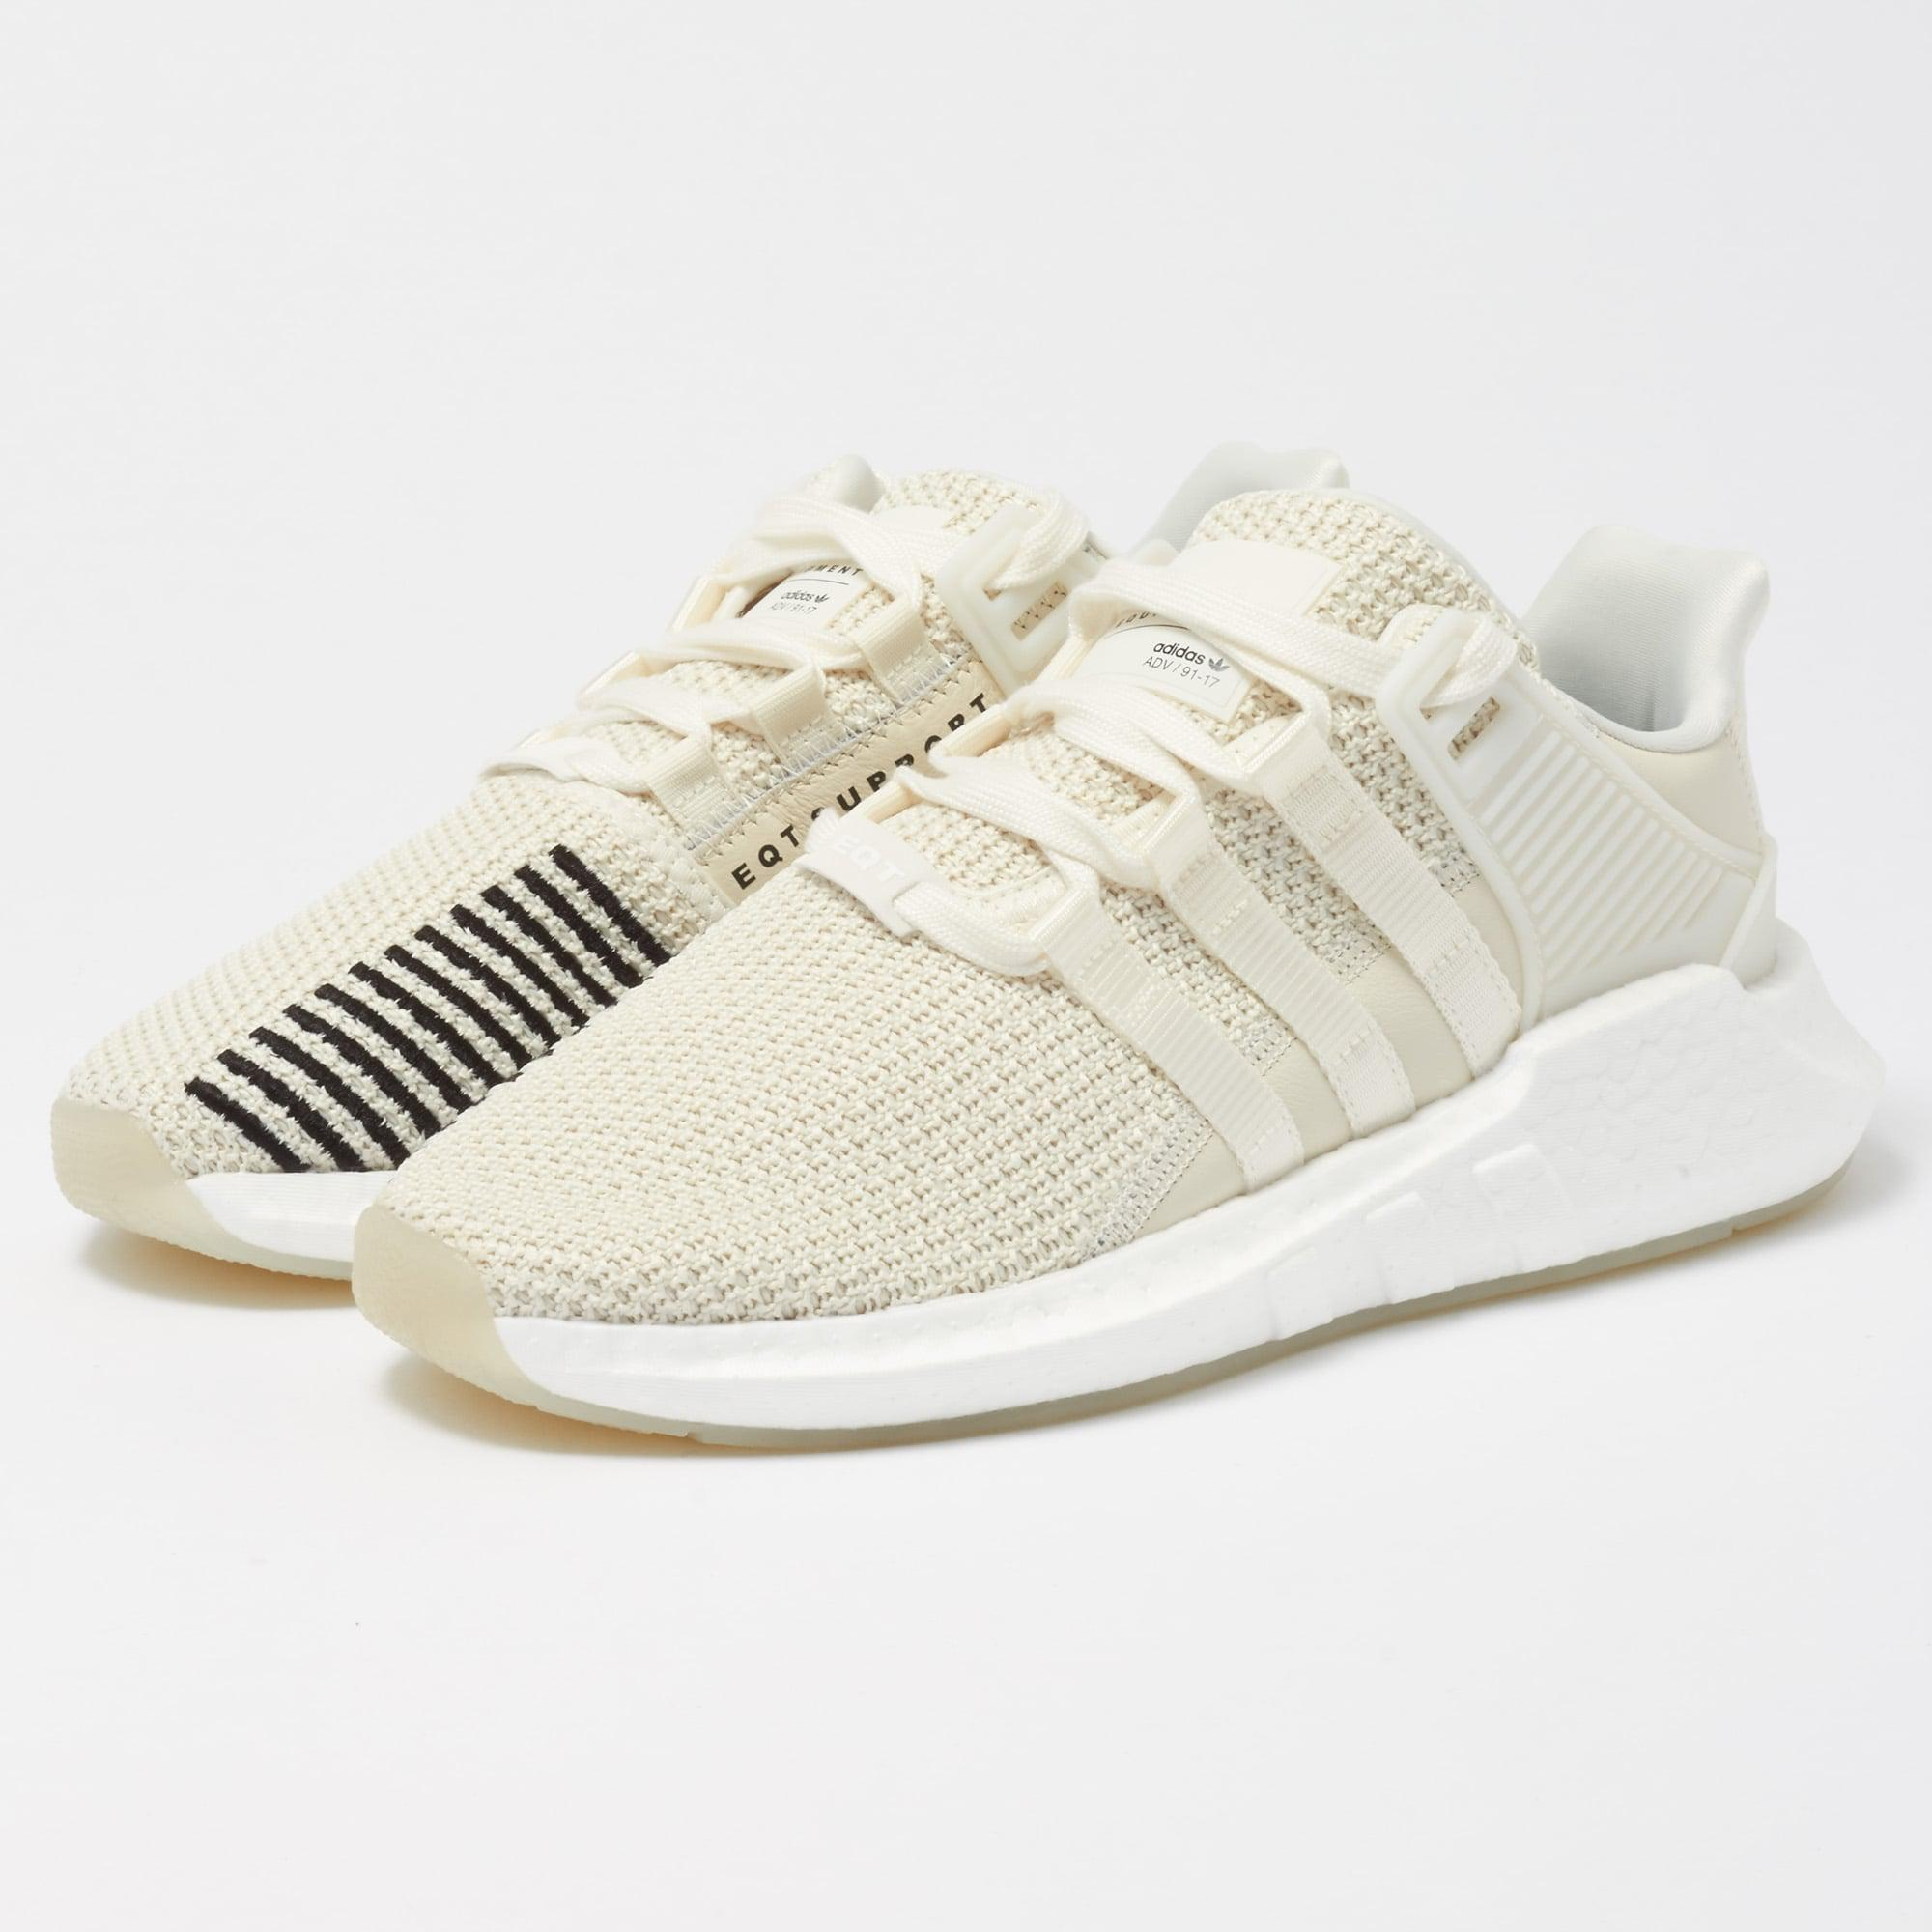 newest 6f581 4f32a Lyst - adidas Originals Eqt Support 9317 - Off White in Whit